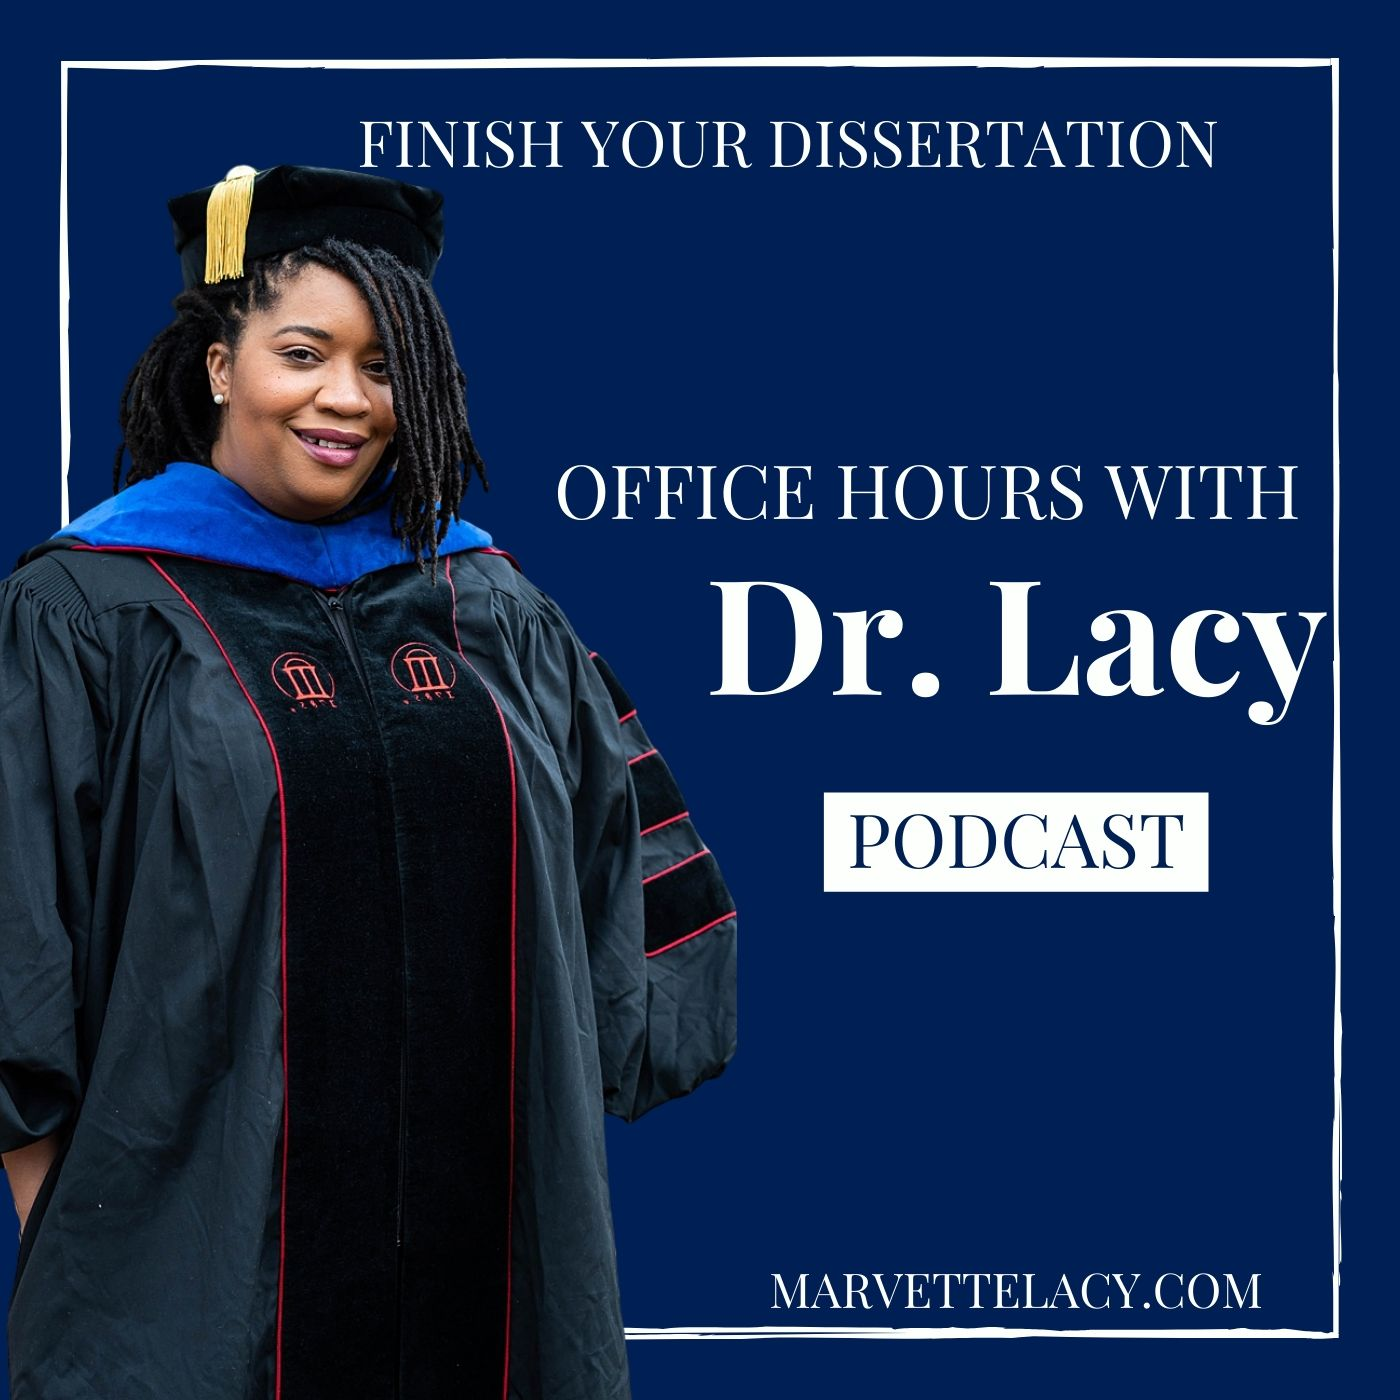 Office Hours with Dr. Lacy show art